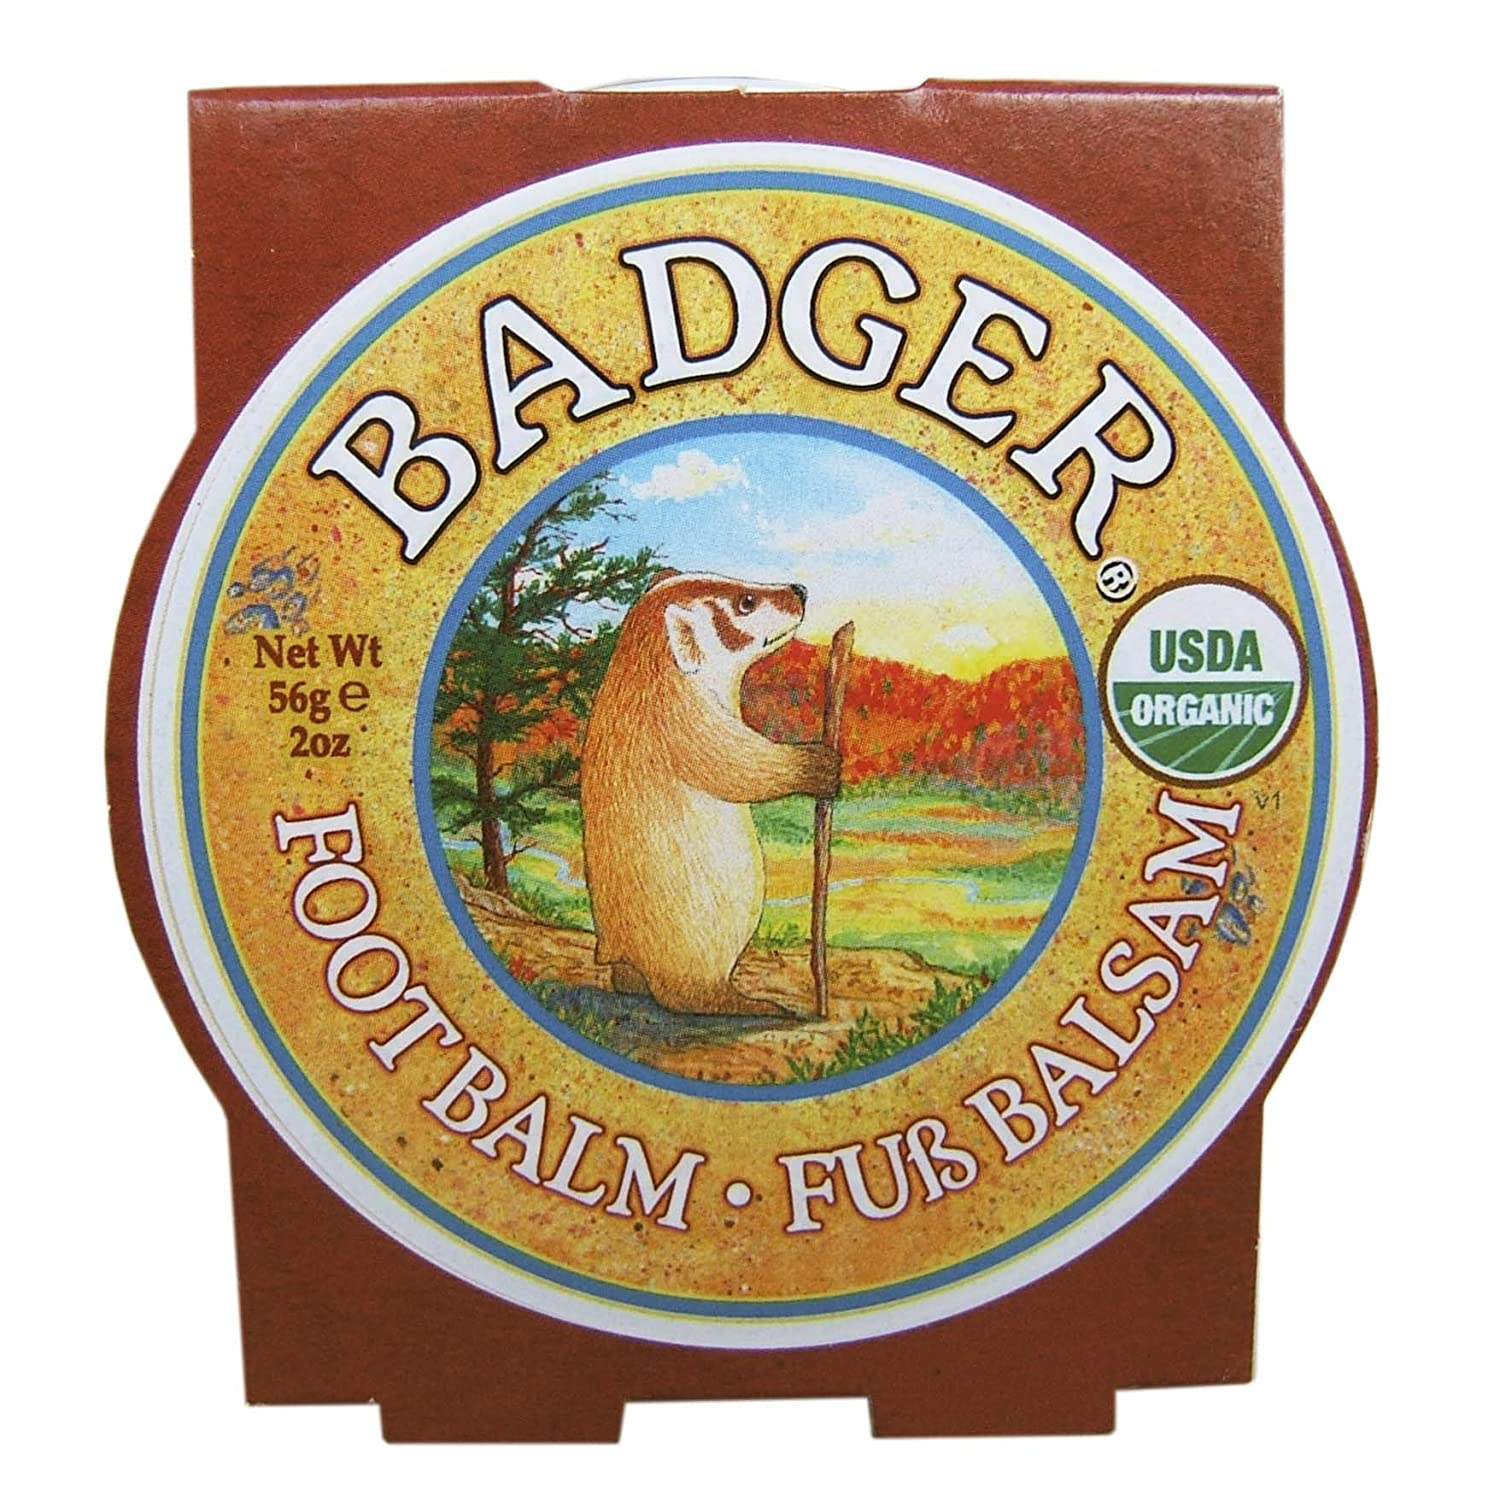 Badger Balms Foot Balm 56 Grams 566794